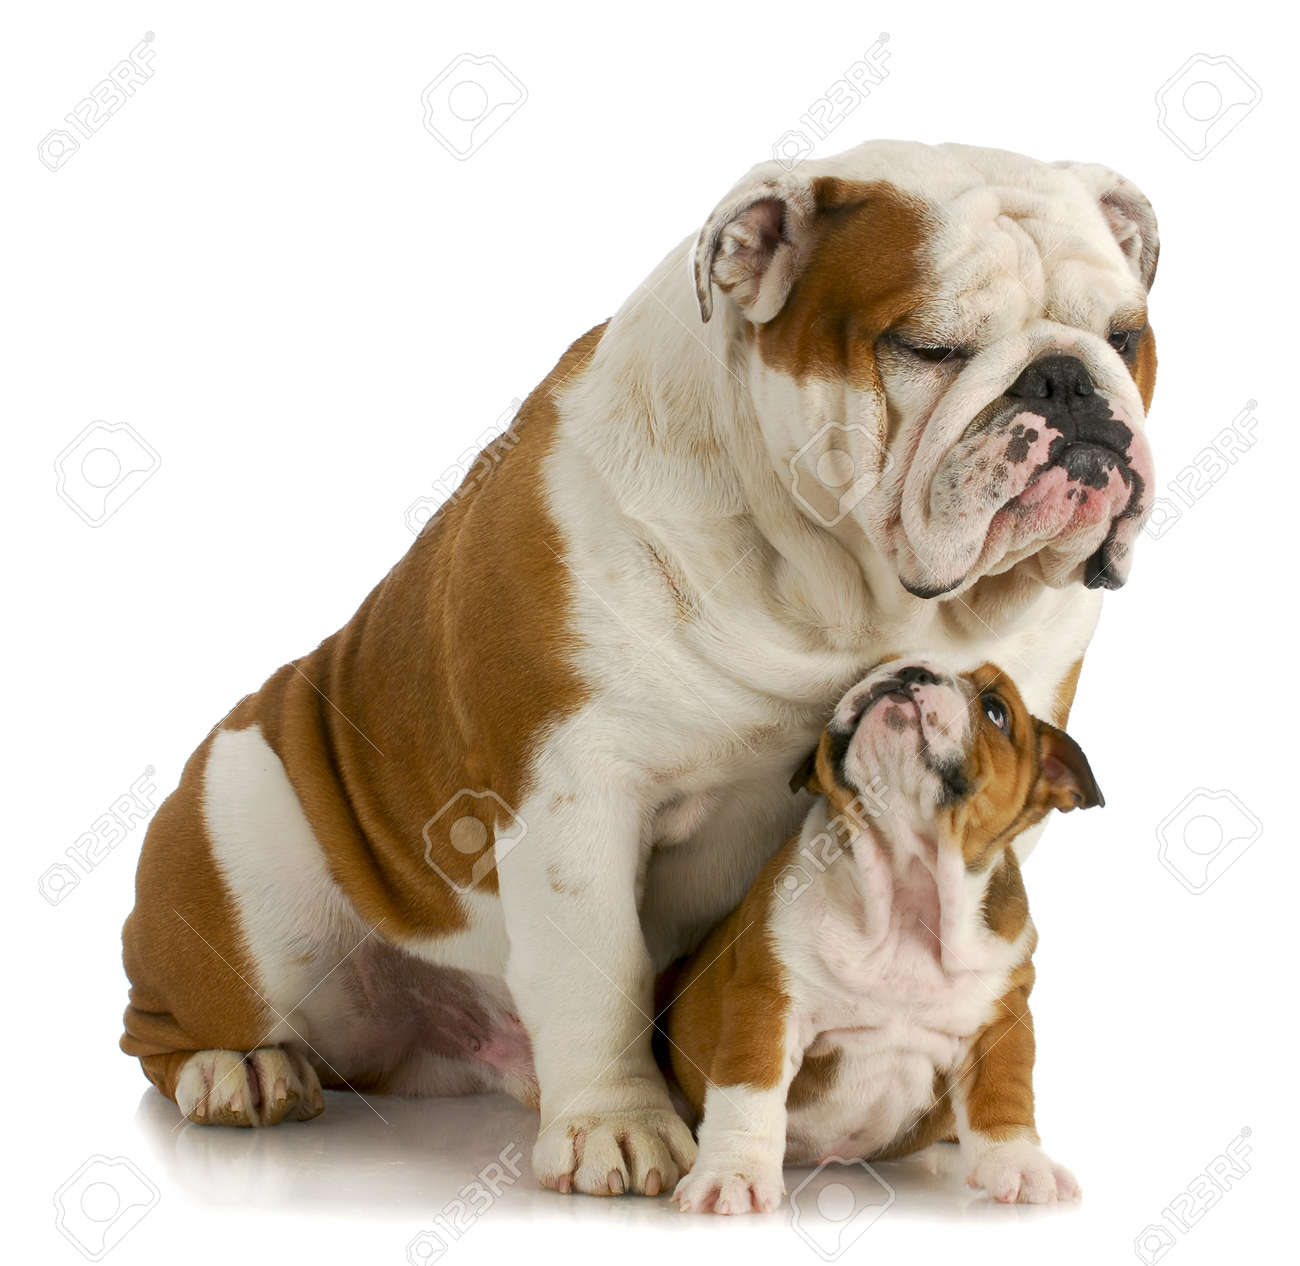 big and small dog - english bulldog father sitting with 8 week